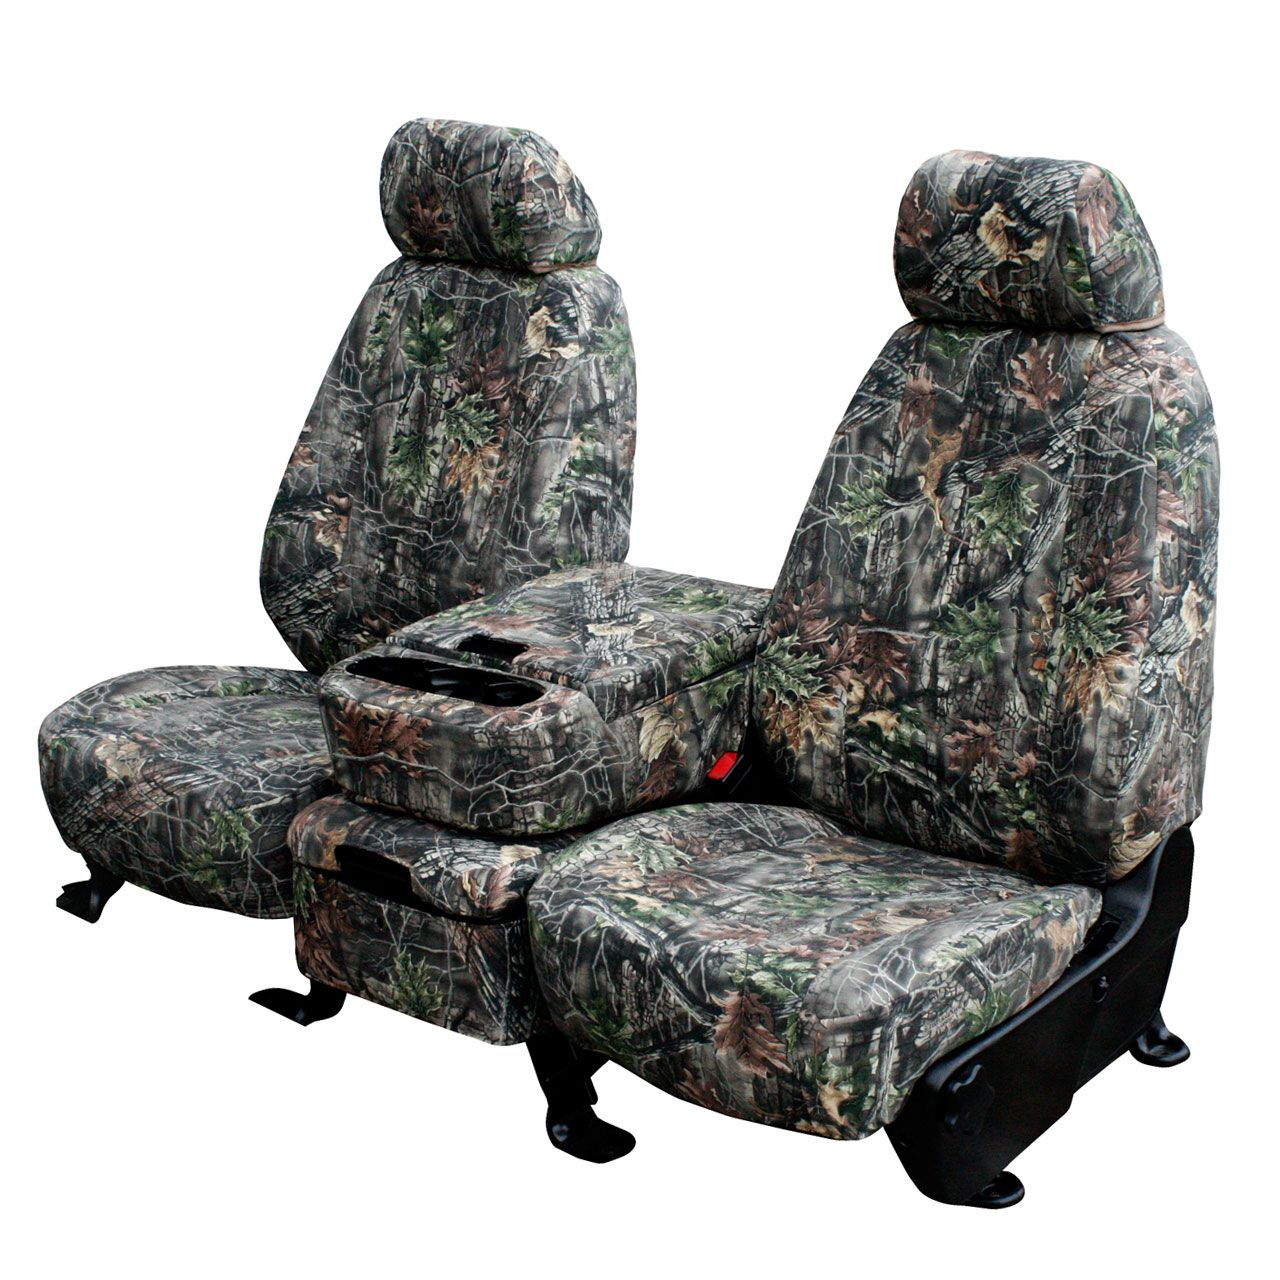 Caltrend Camo Seat Covers  Best Hunter Camouflage Seat